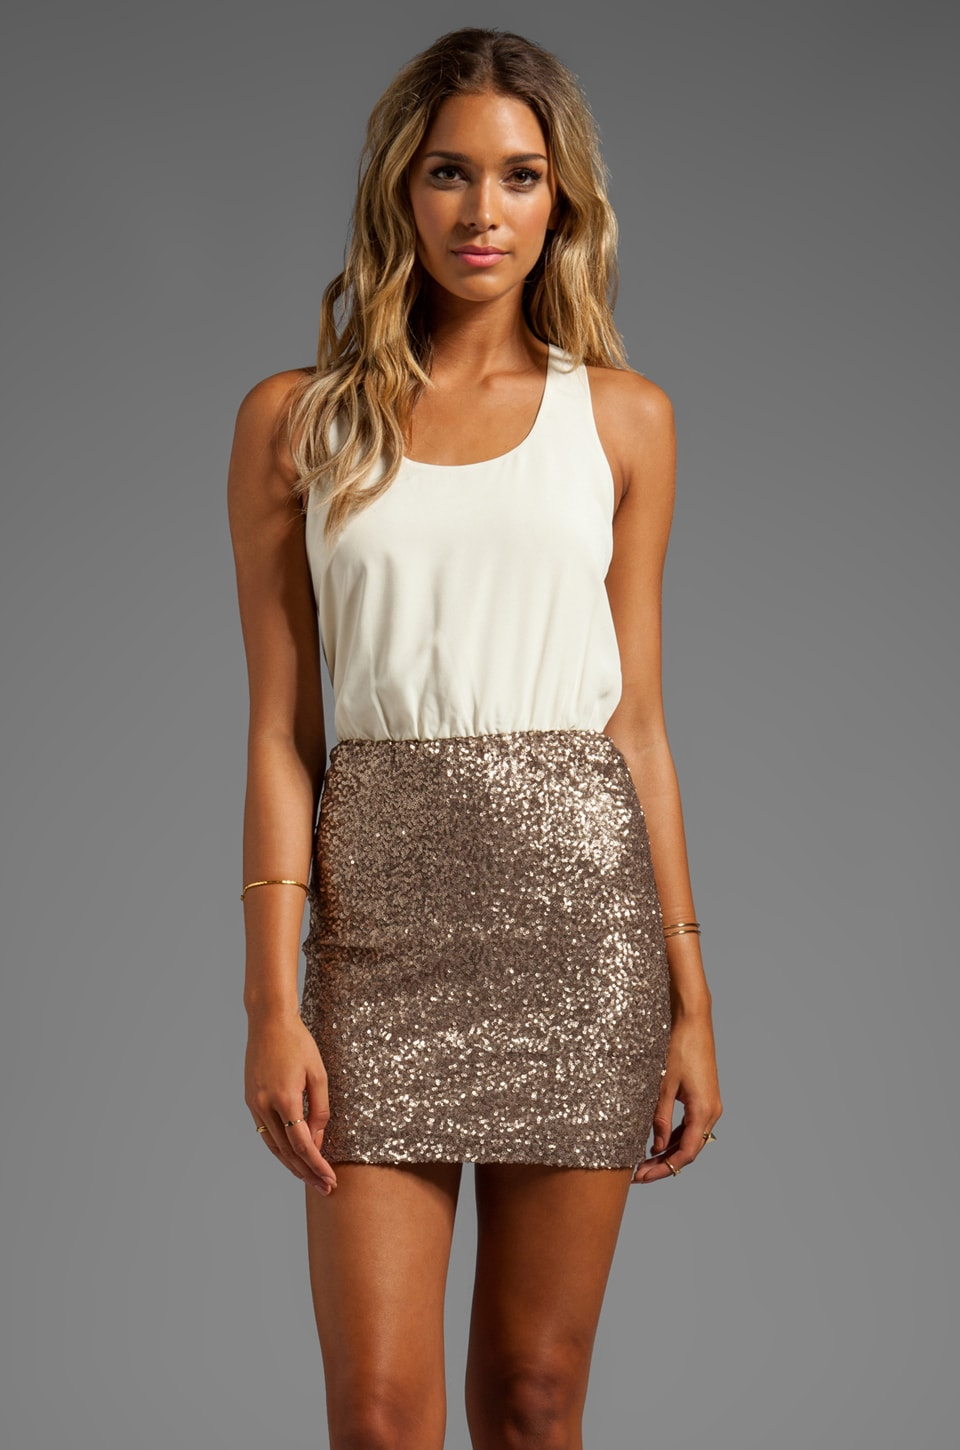 MM Couture by Miss Me Racerback Dress w/ Sequin Bottom in Beige